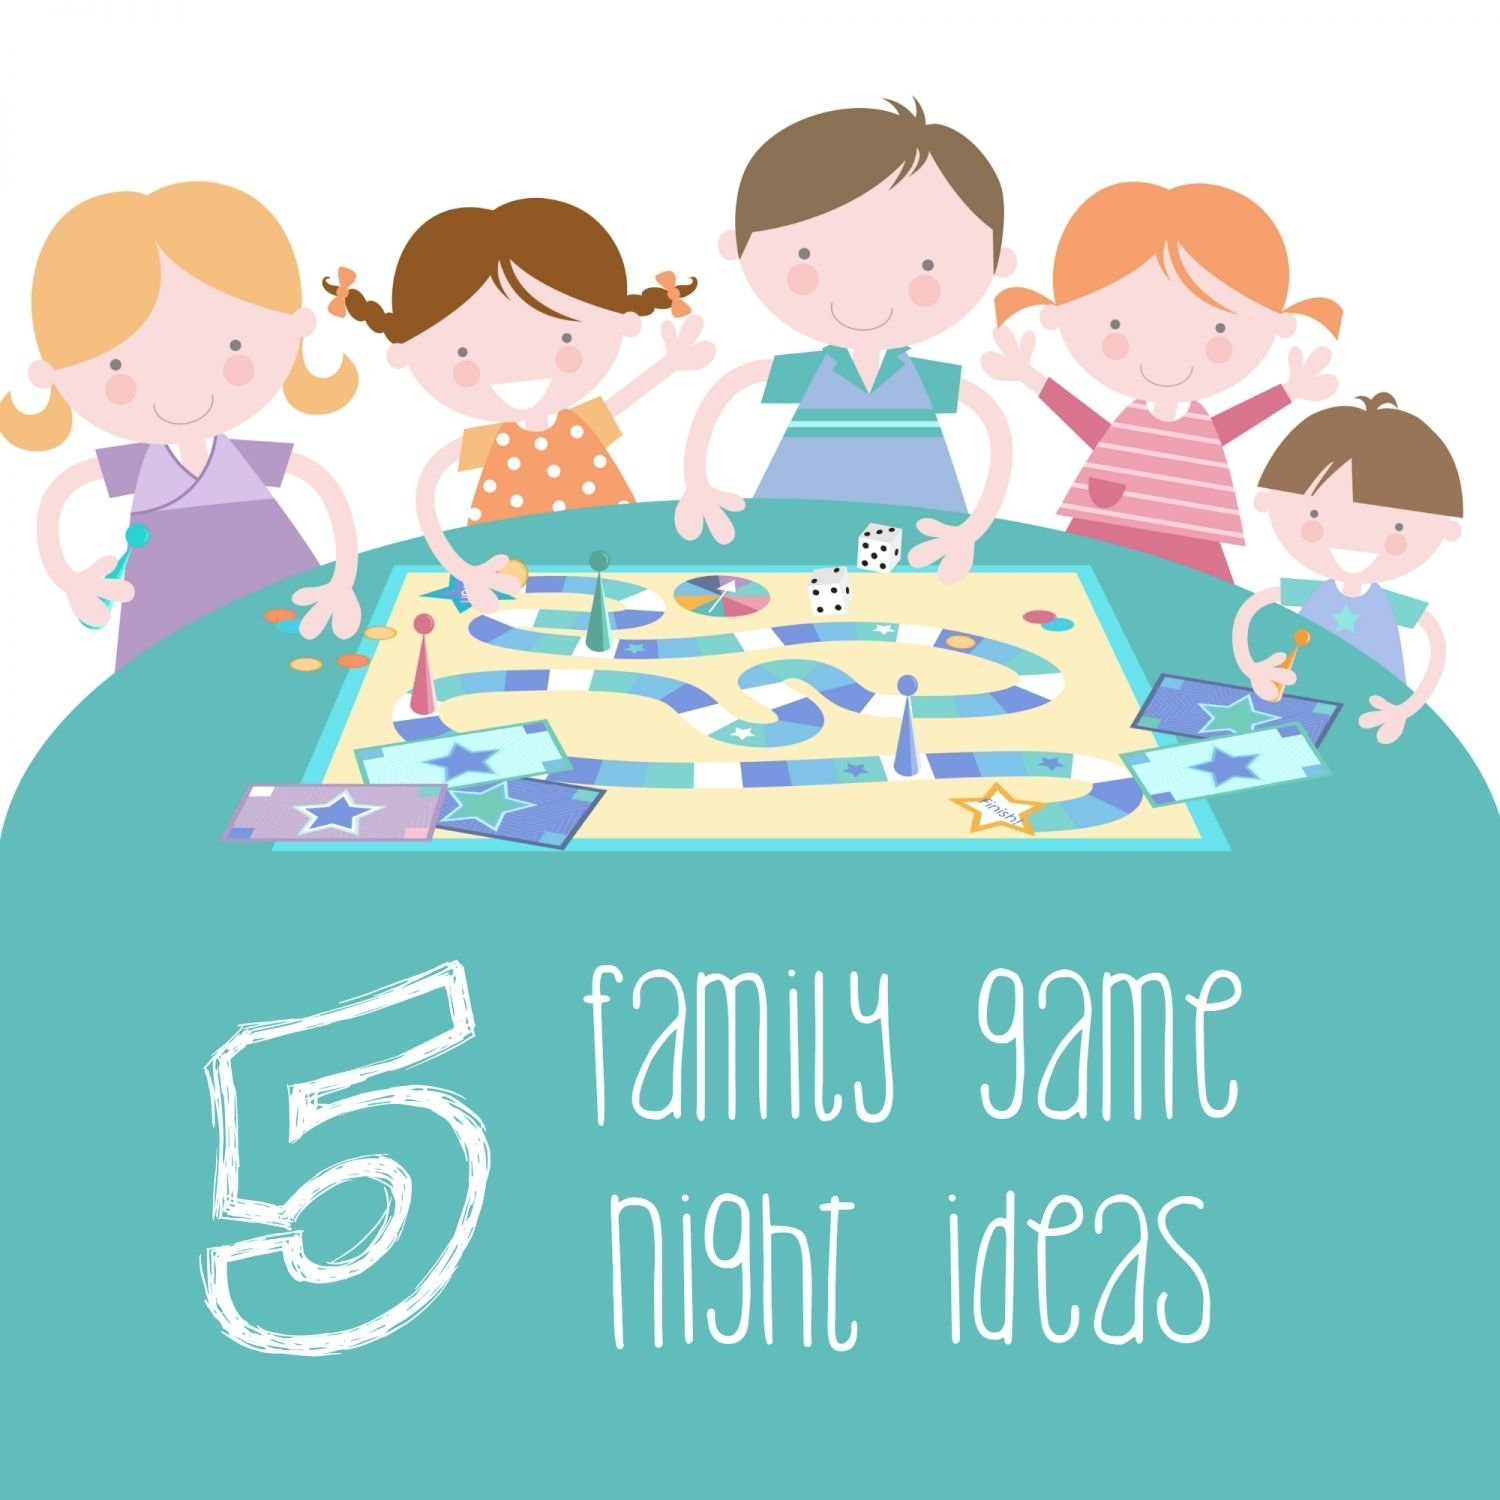 10 Attractive Ideas For Family Game Night hottest toys game night ideas the toy insider 2021